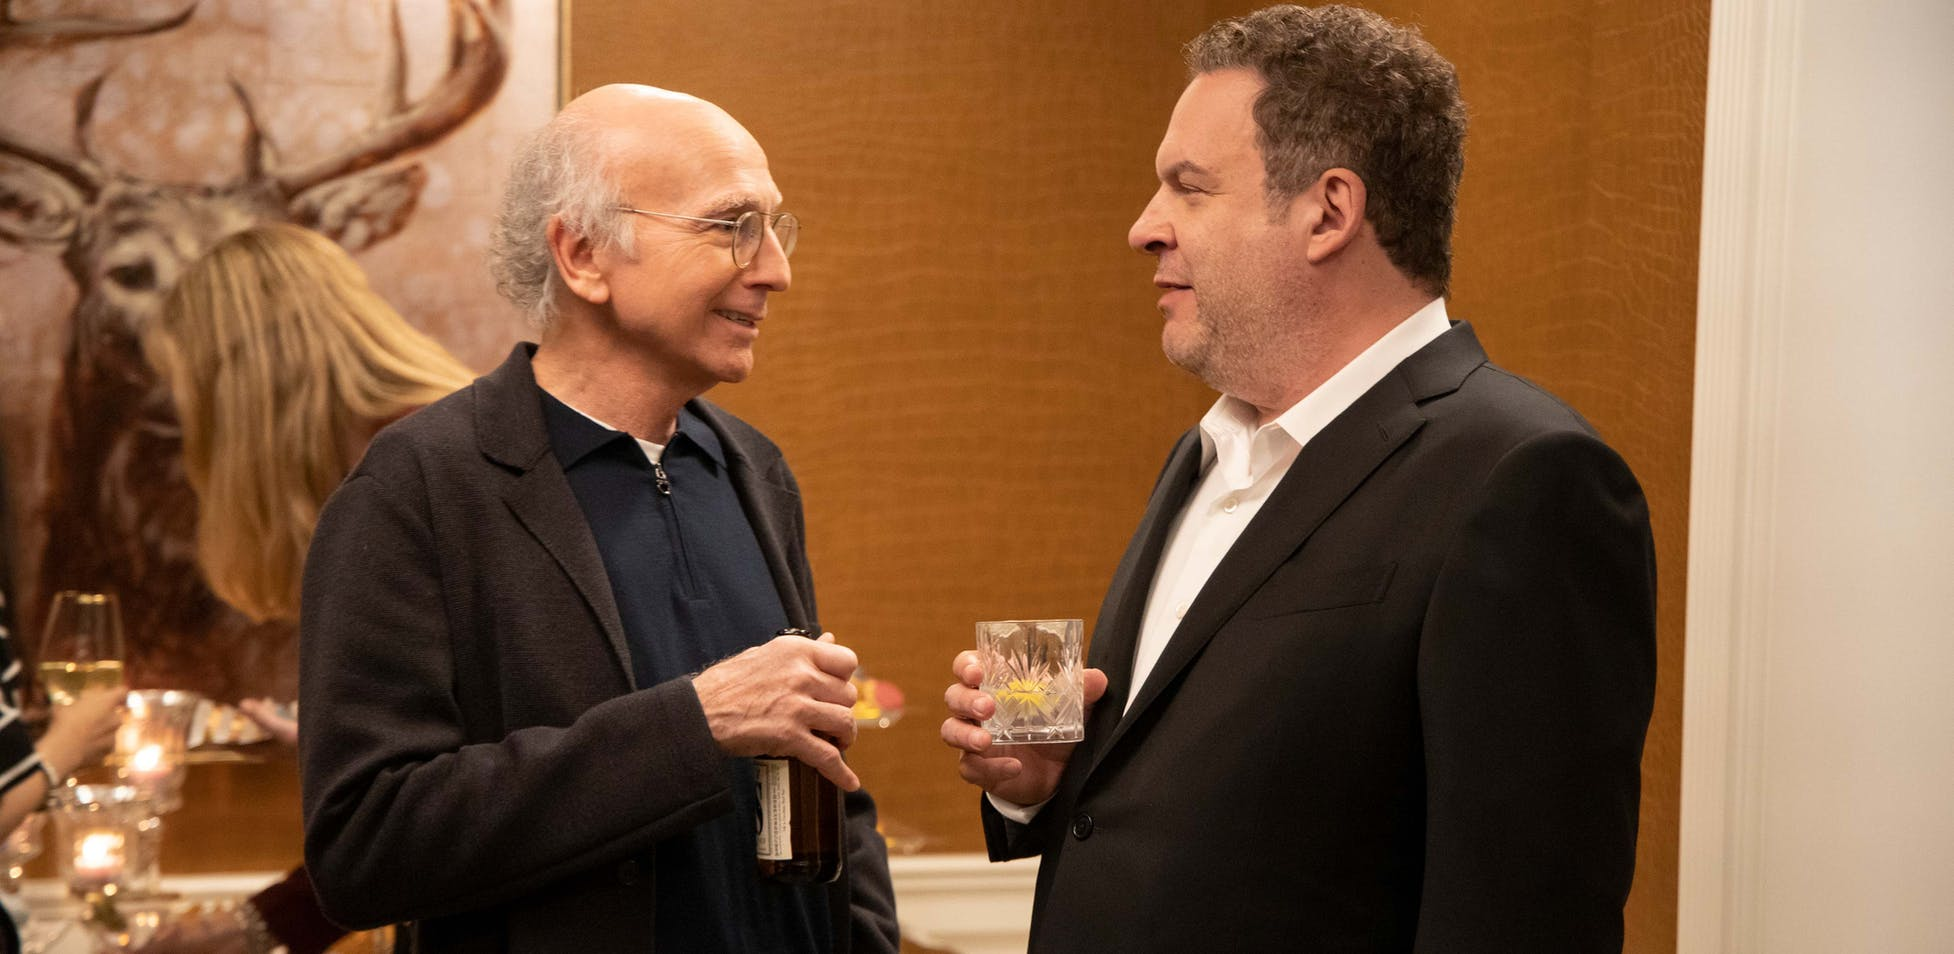 Curb Your Enthusiasm - Season 10